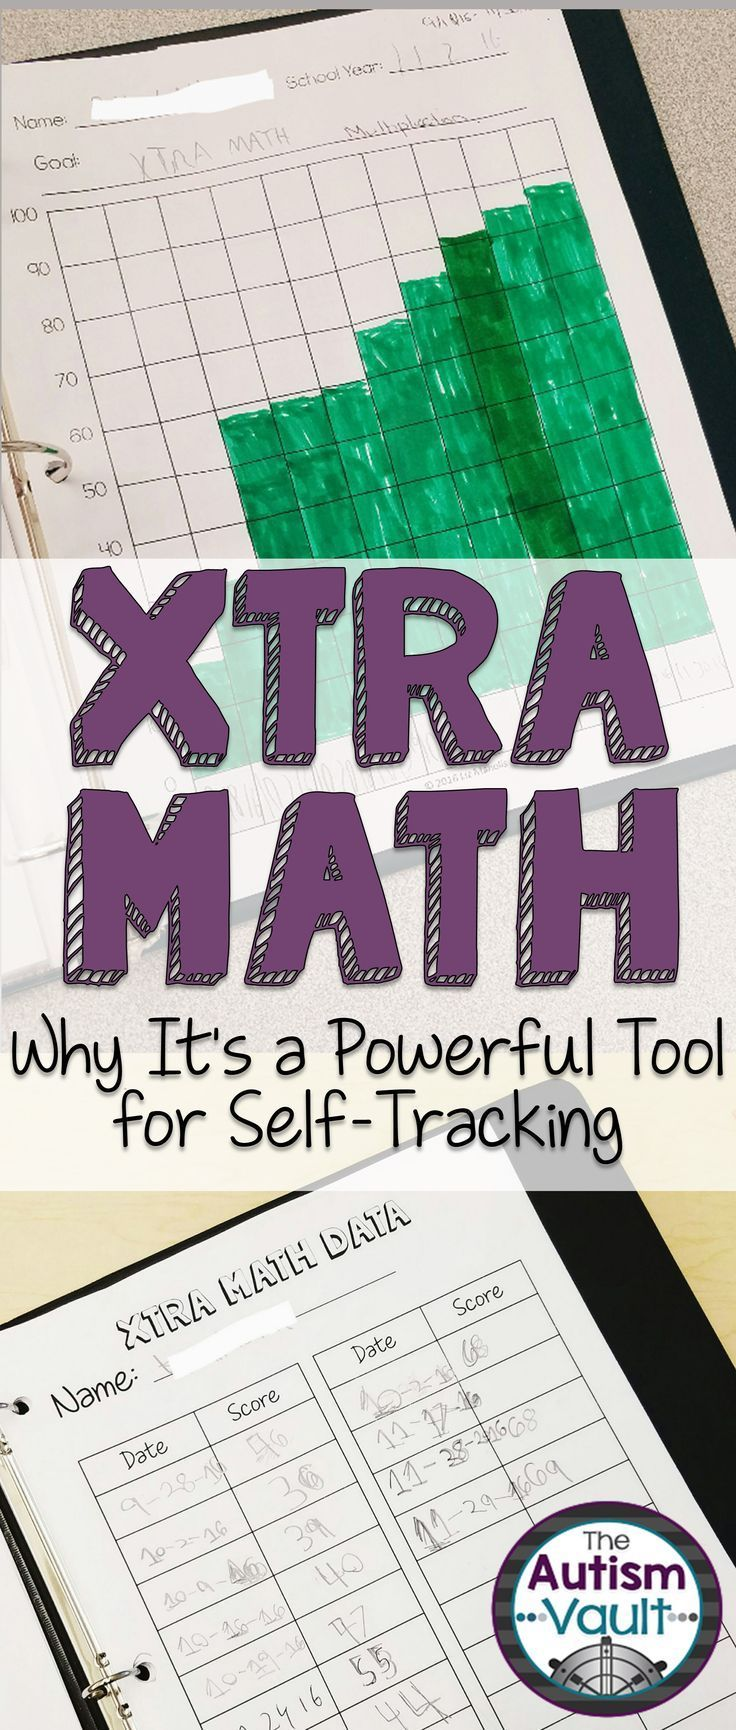 The Xtra Math website and app are great for teaching math facts. The way that the site automates data lends itself greatly to the opportunity for students to self-track and monitor their progress.